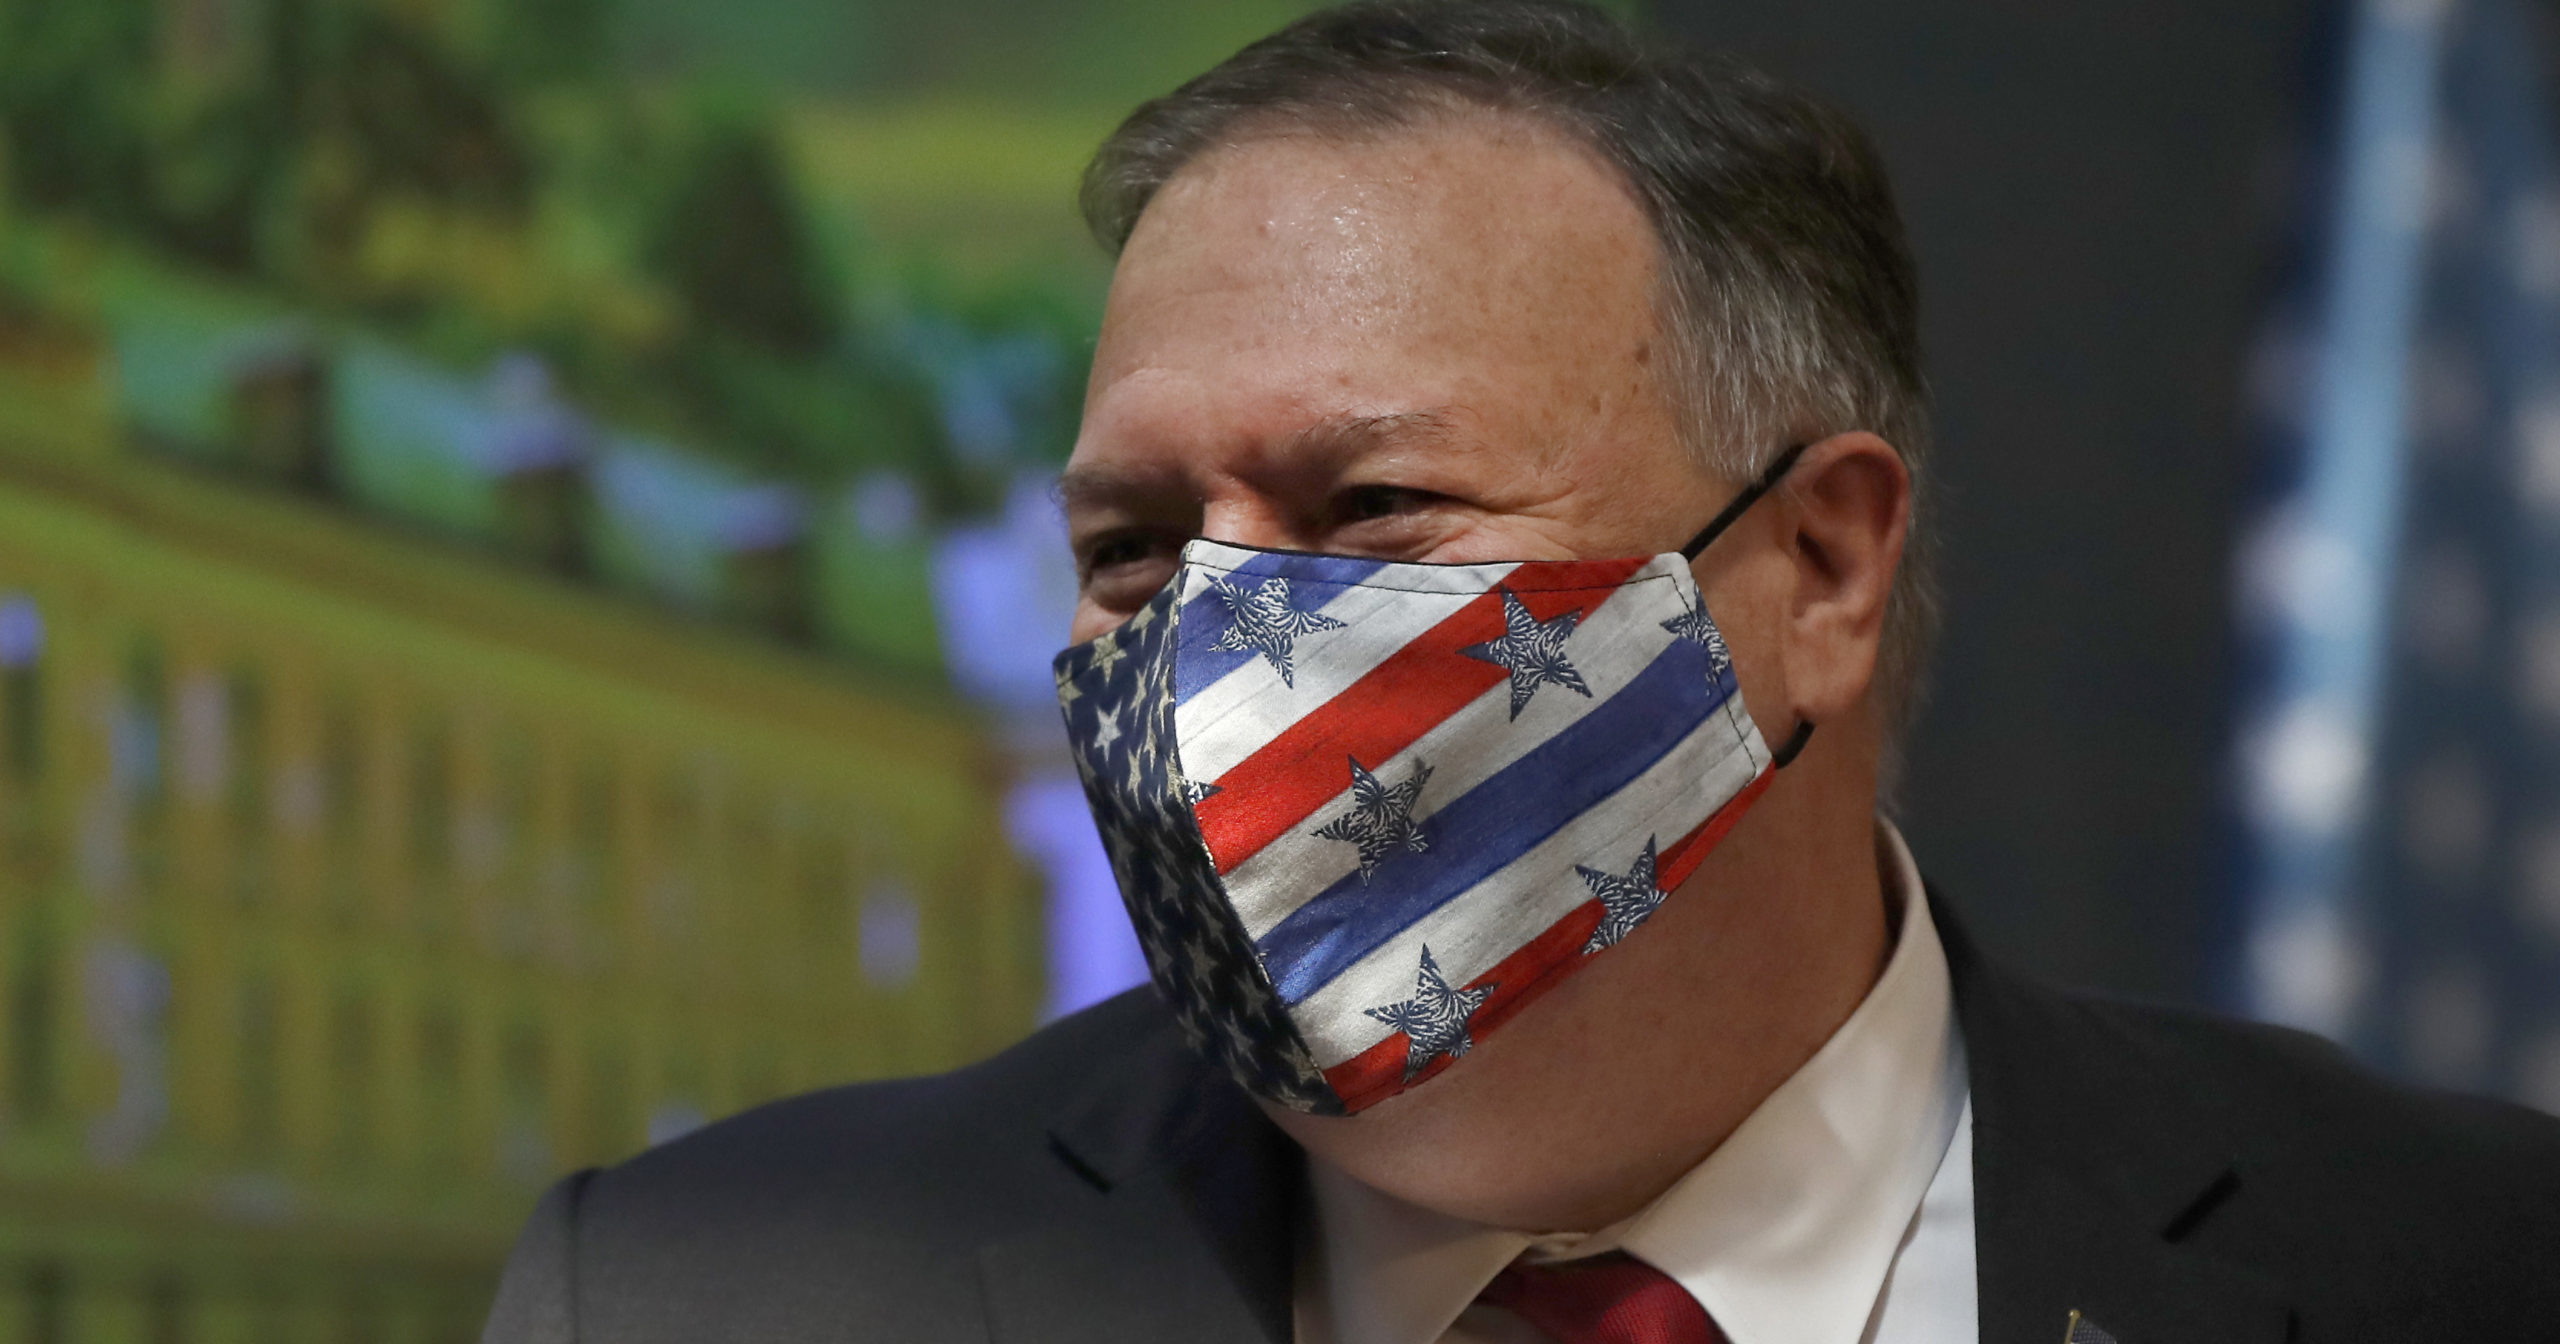 Secretary of State Mike Pompeo wears a face mask during a joint news conference with Czech Republic Prime Minister Andrej Babis in Prague, Czech Republic, on Aug. 12, 2020. Pompeo is in the Czech Republic at the start of a four-nation tour of Europe.